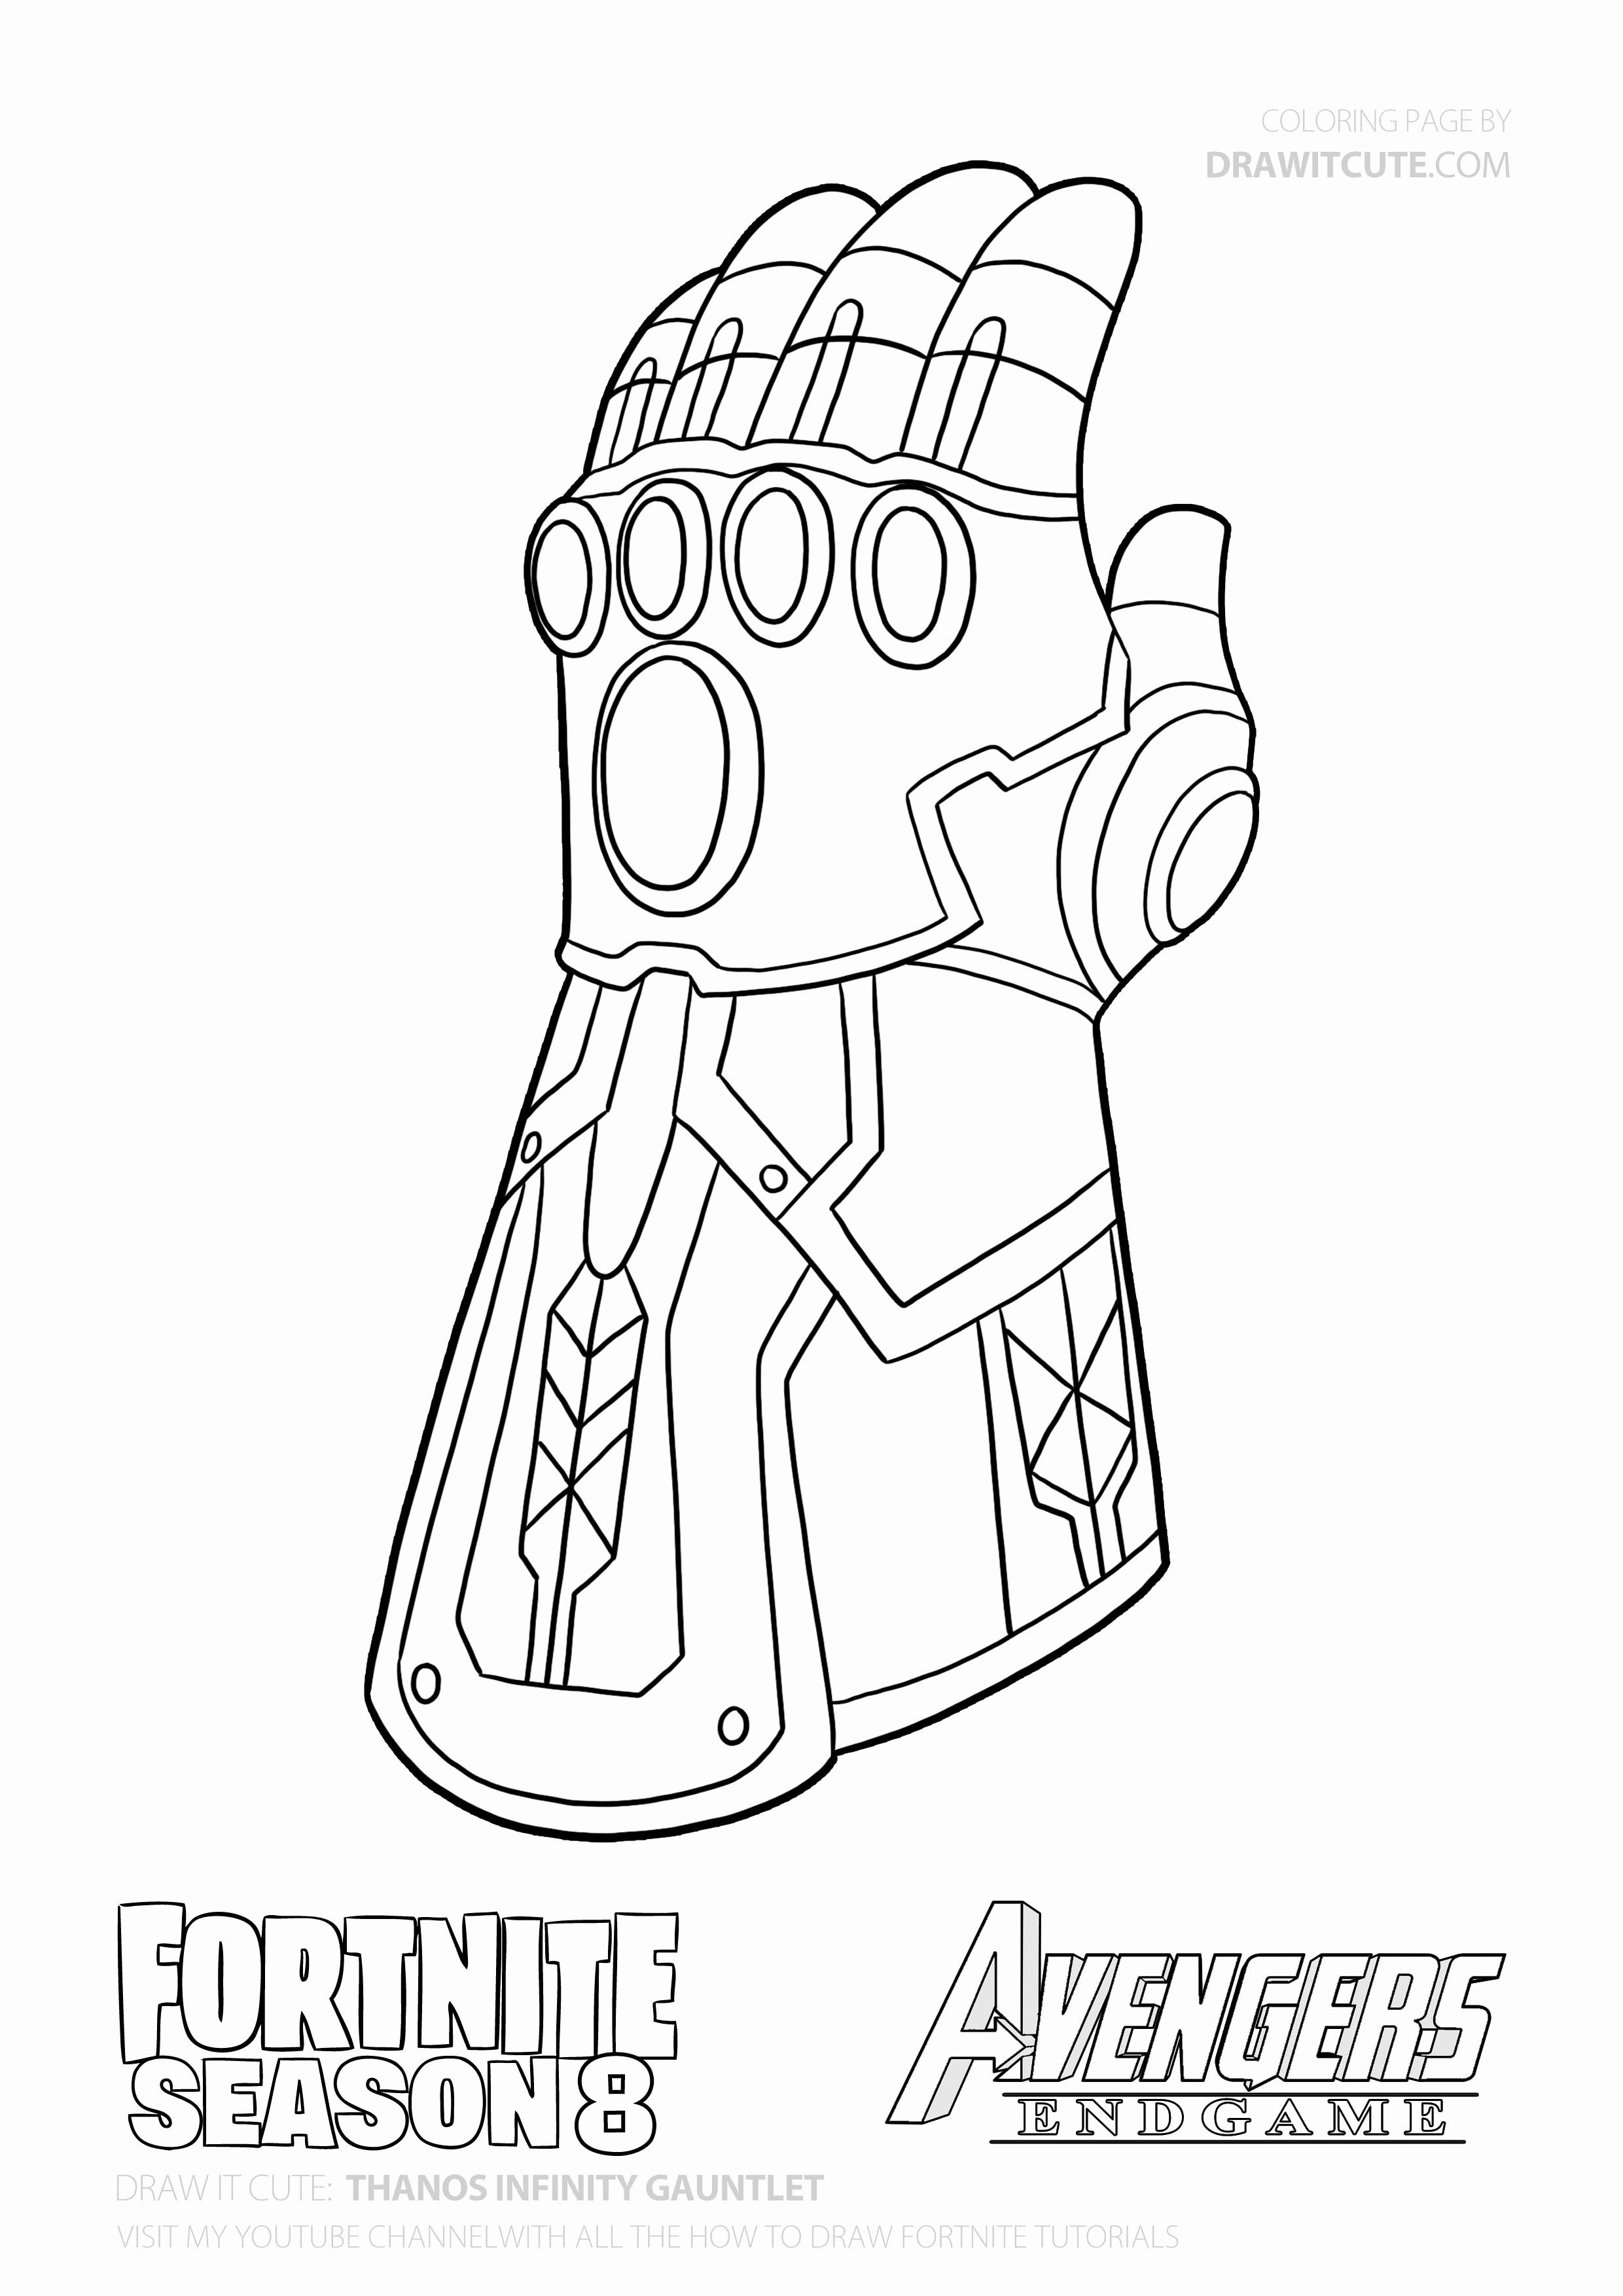 Infinity Gauntlet Coloring Page Inspirational How To Draw Thanos Infinity Gauntlet Superhero Coloring Pages Avengers Coloring Pages Cartoon Coloring Pages